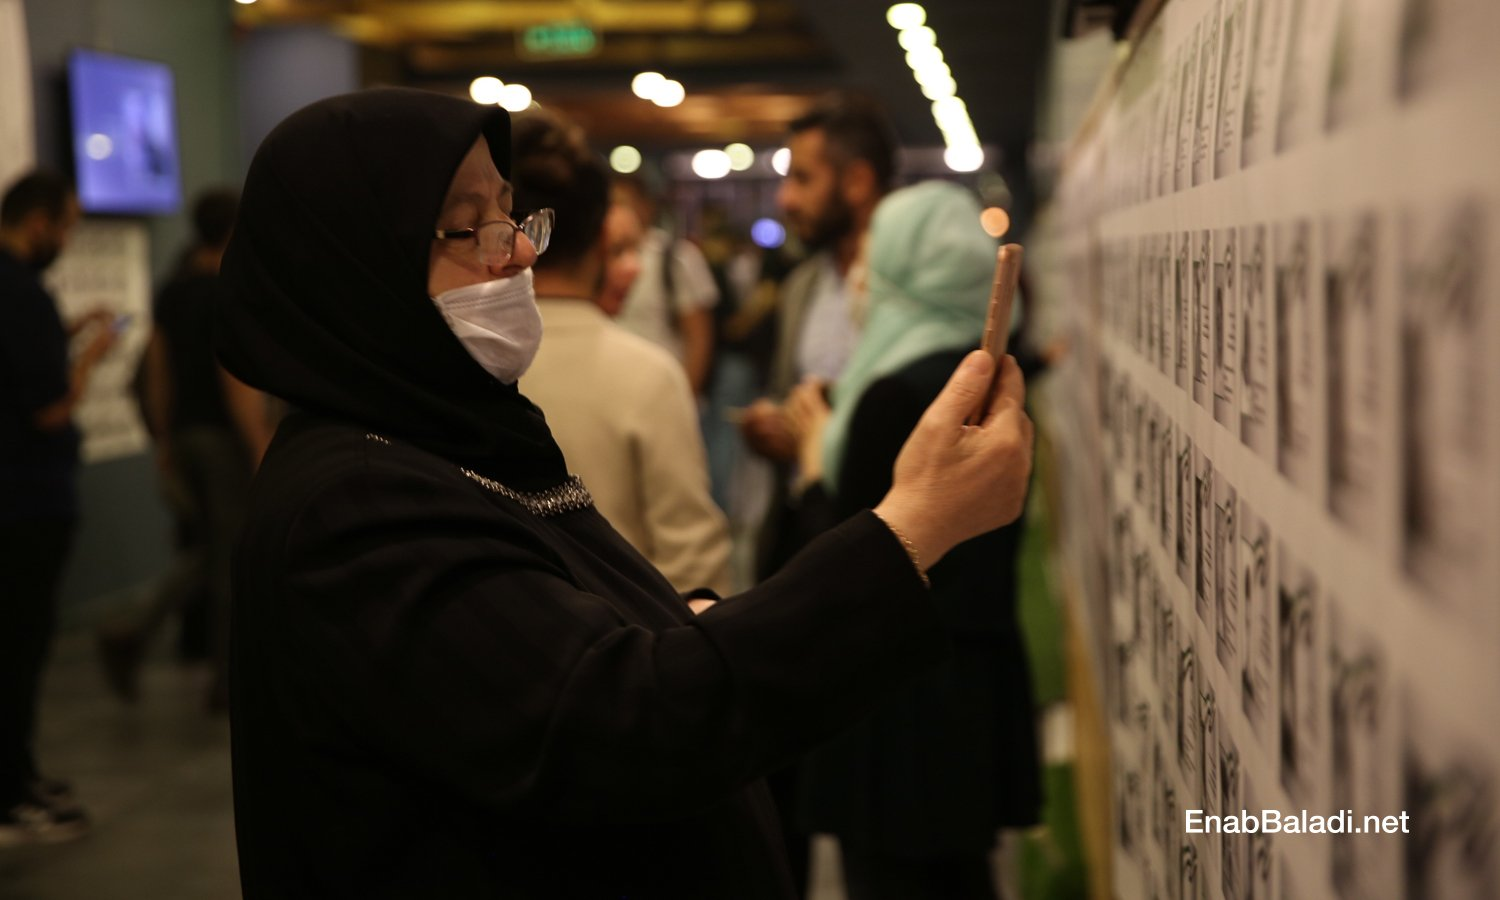 """The """"Residents of Memory"""" photo exhibition, displaying thousands of pictures of child victims killed after 2011, organized by the Syrian activist Tamer Turkmane in Istanbul – 13 October 2020 (Enab Baladi/Abdulmuin Humus)."""